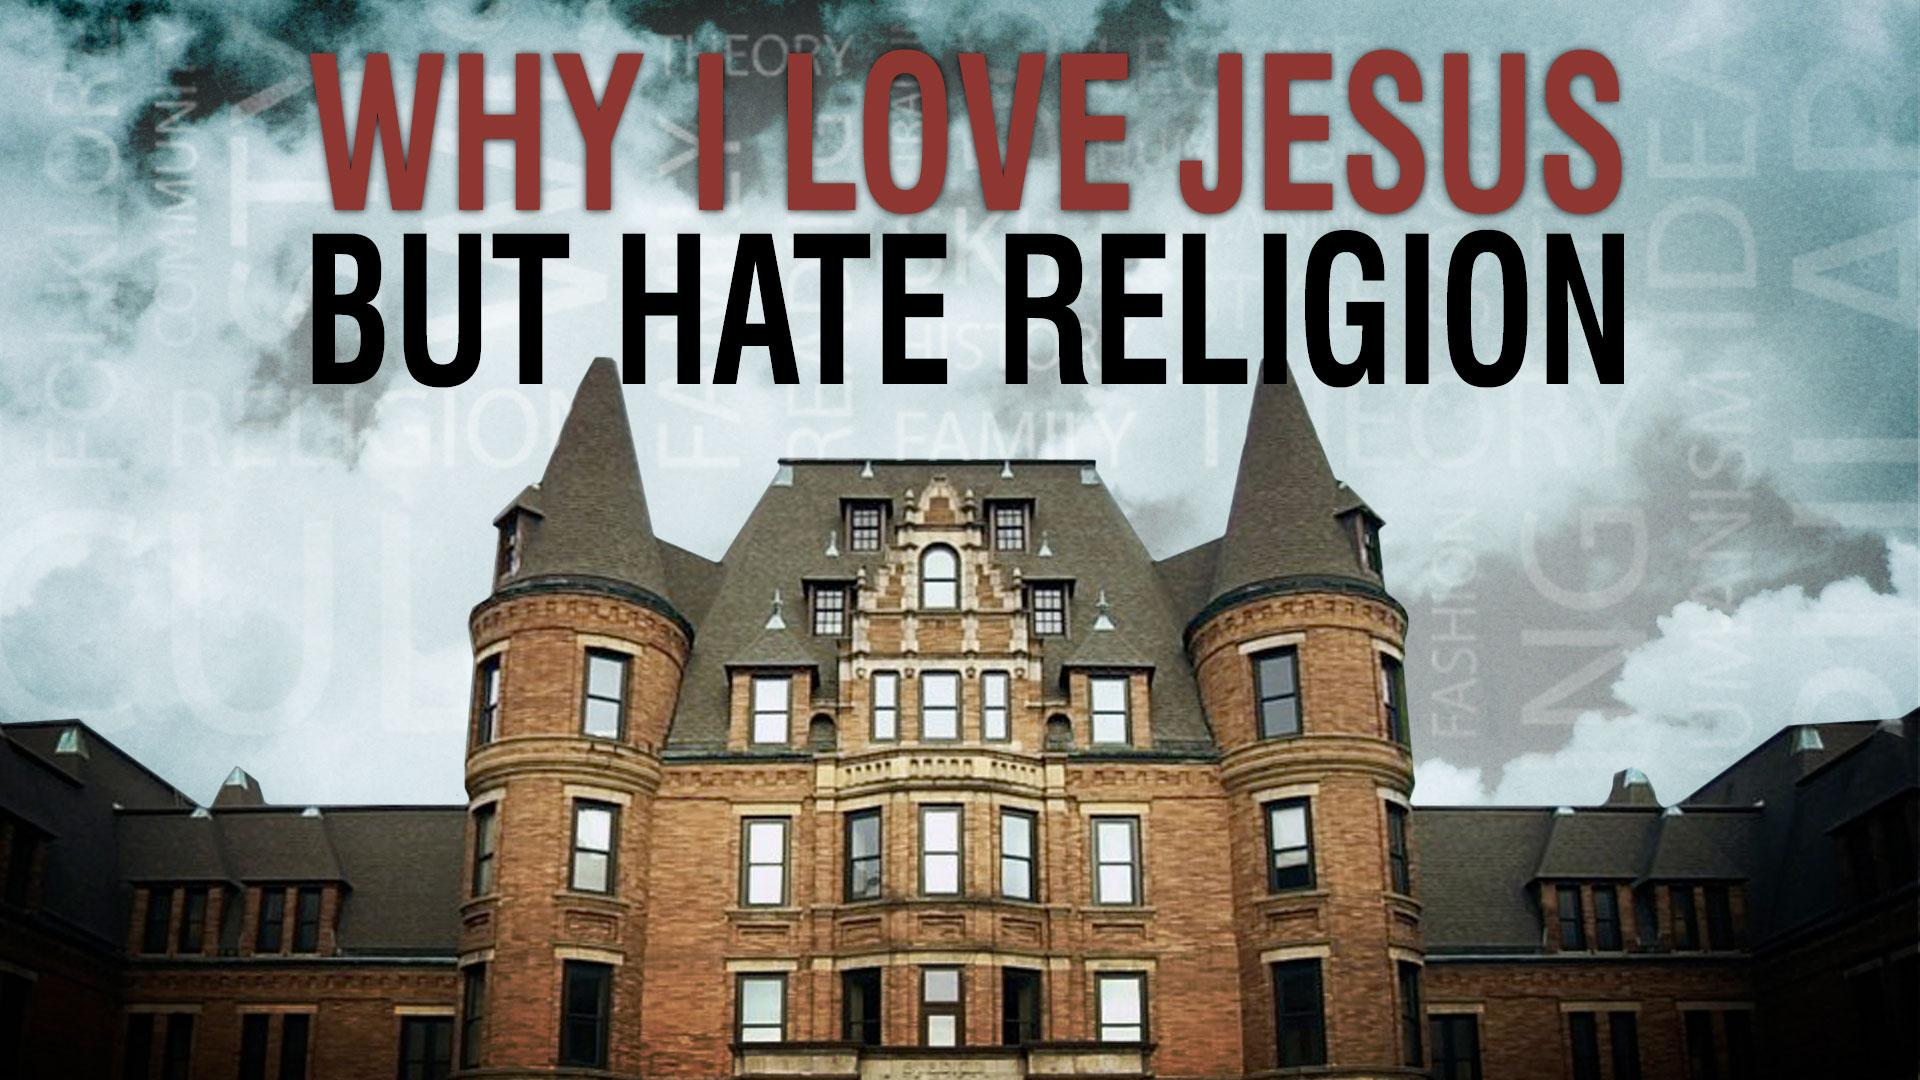 700 Club Interactive: Why I Love Jesus March 27, 2014 but Hate